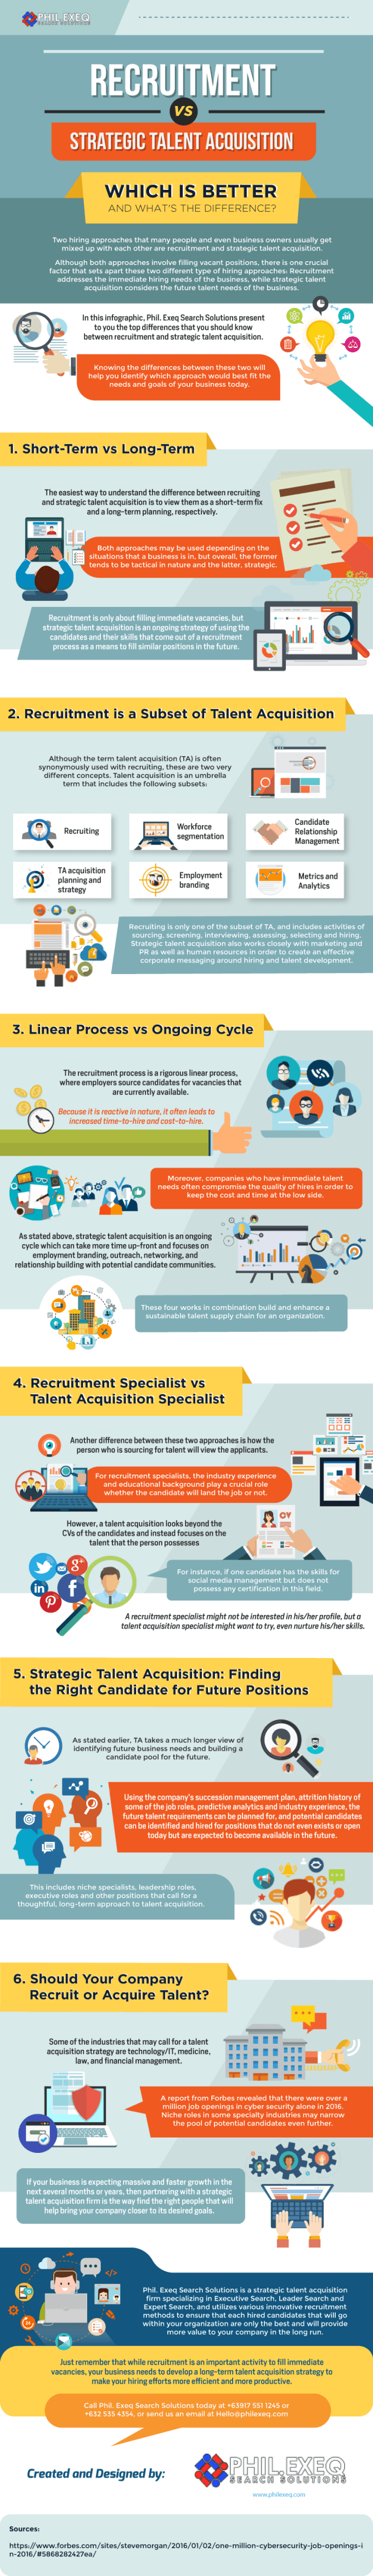 talent acquisition vs. recruitment